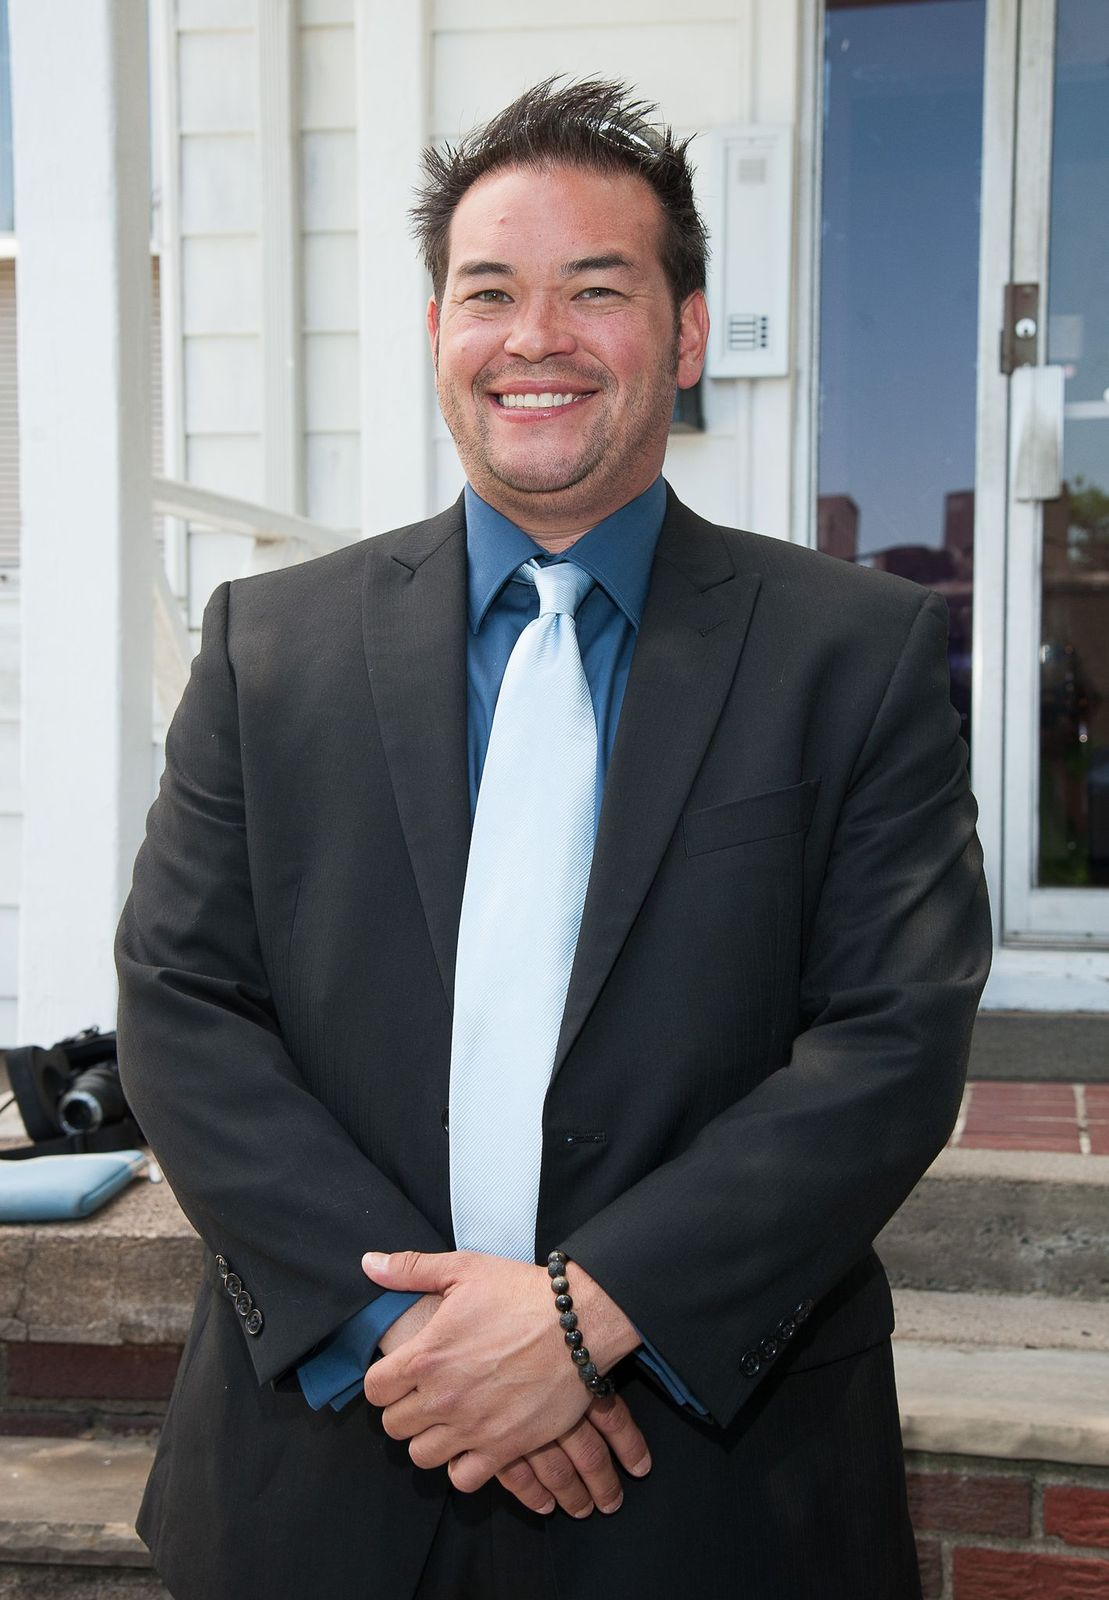 Jon Gosselin at a press conference on Tax Deductible Marriage Counseling at Bergen Marriage Counseling & Psychotherapy on June 27, 2012 | Photo: Getty Images